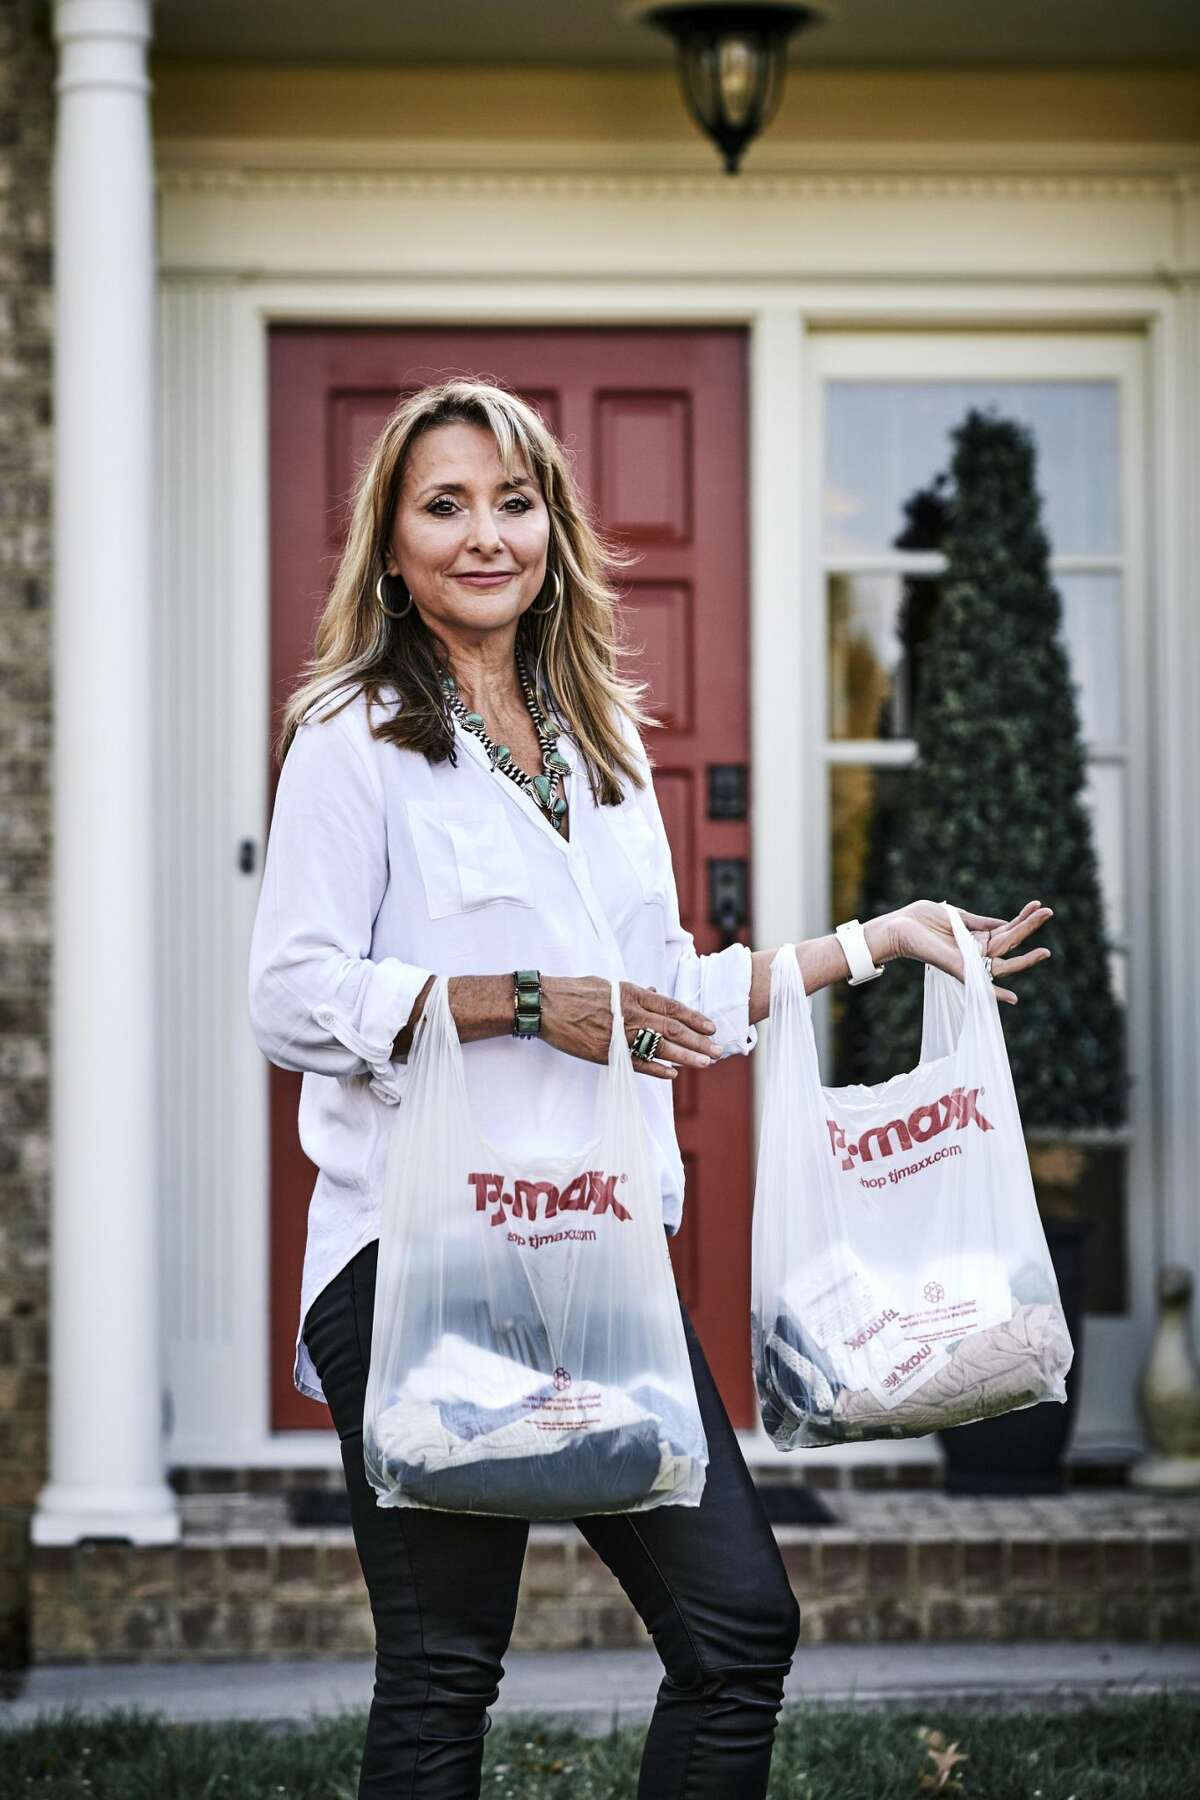 """Rachel Veazey of Cleveland, Tennessee, swore off TJ Maxx, a favorite store, over reports it had removed promotional signs for Ivanka Trump's line of clothes. But she later went back, confessing, """"Gosh, I'm not a very good boycotter."""" MUST CREDIT: Photo for The Washington Post by Shawn Poynter"""